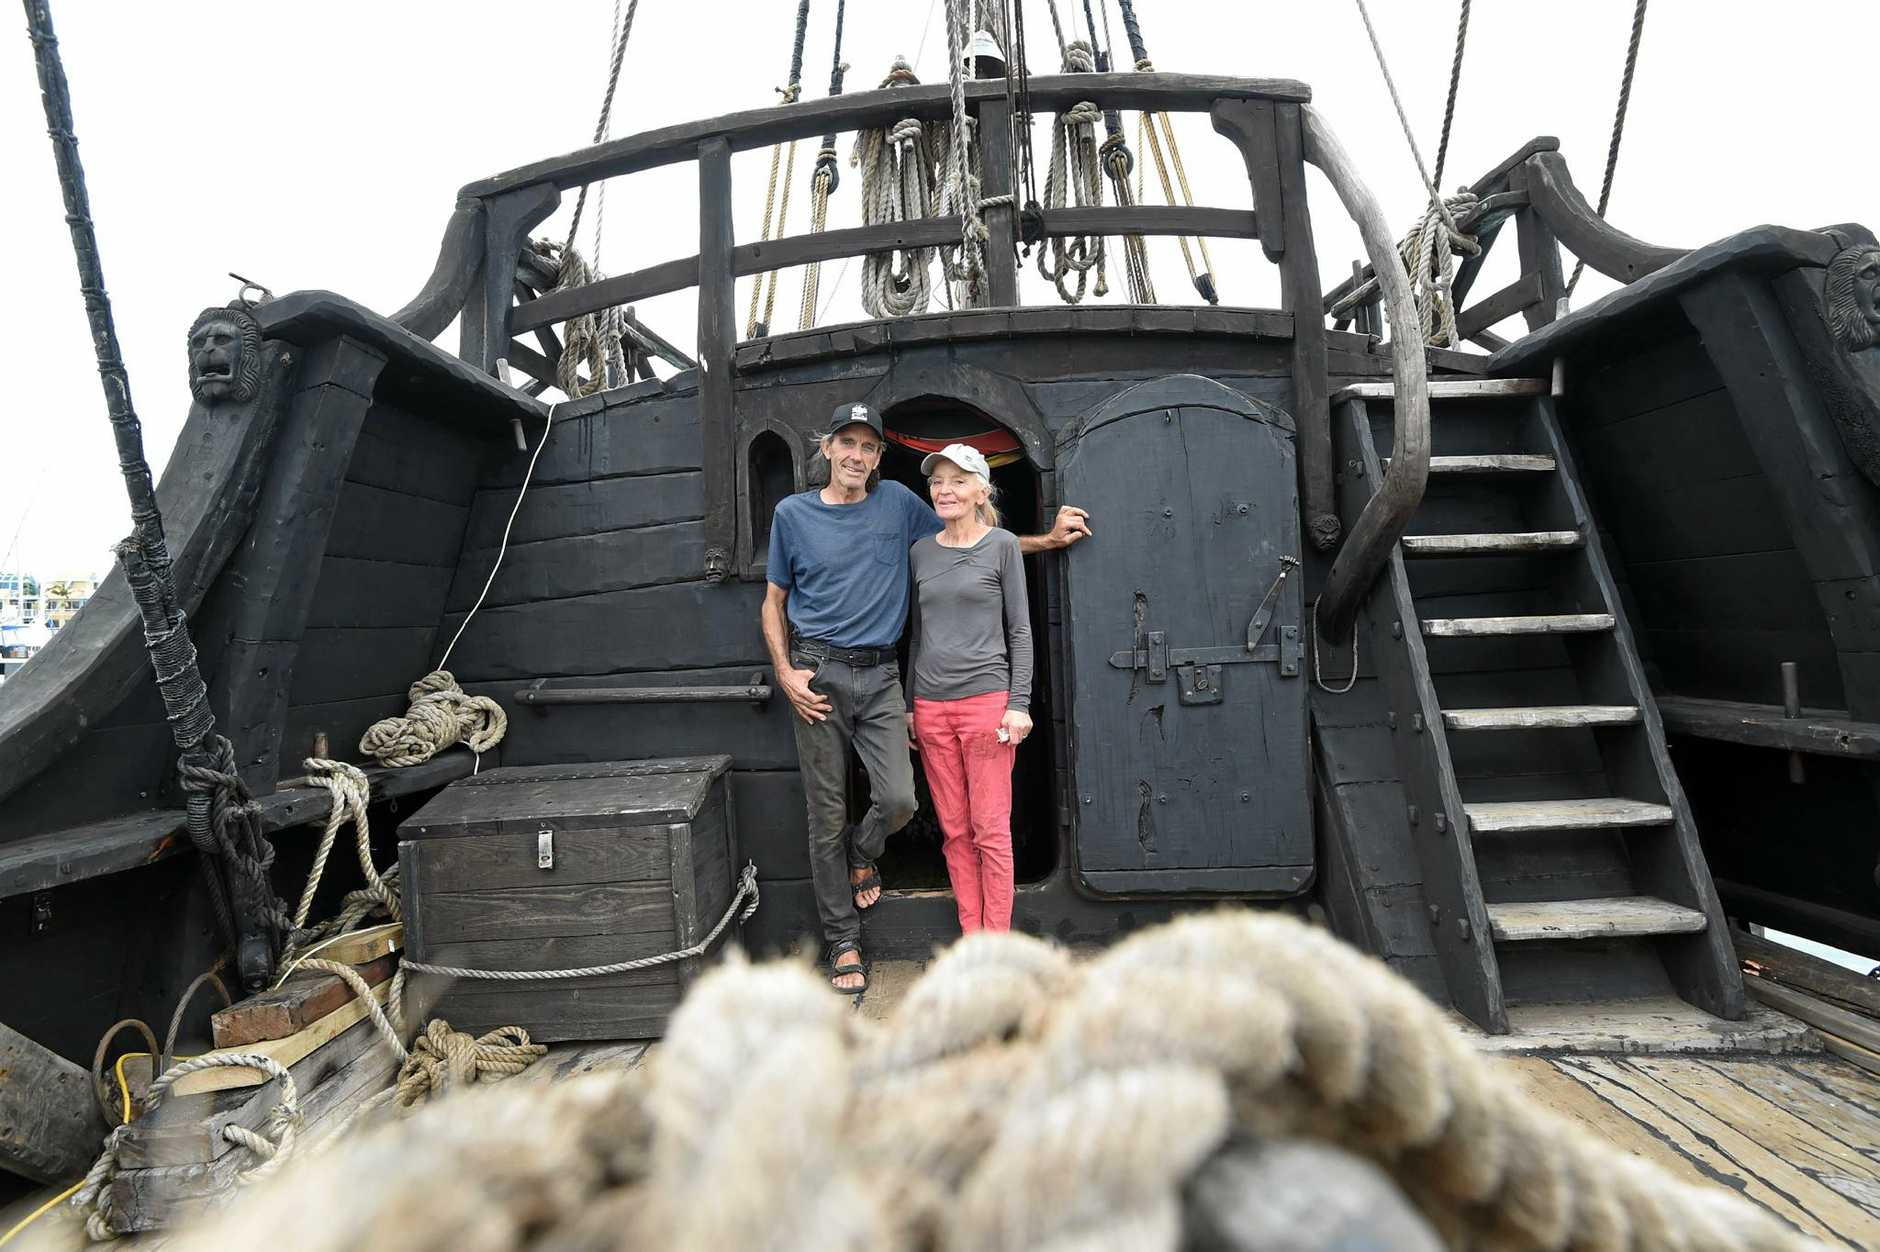 Graeme and Felicite Wylie on board their replica fifteenth century caravel Notorious.